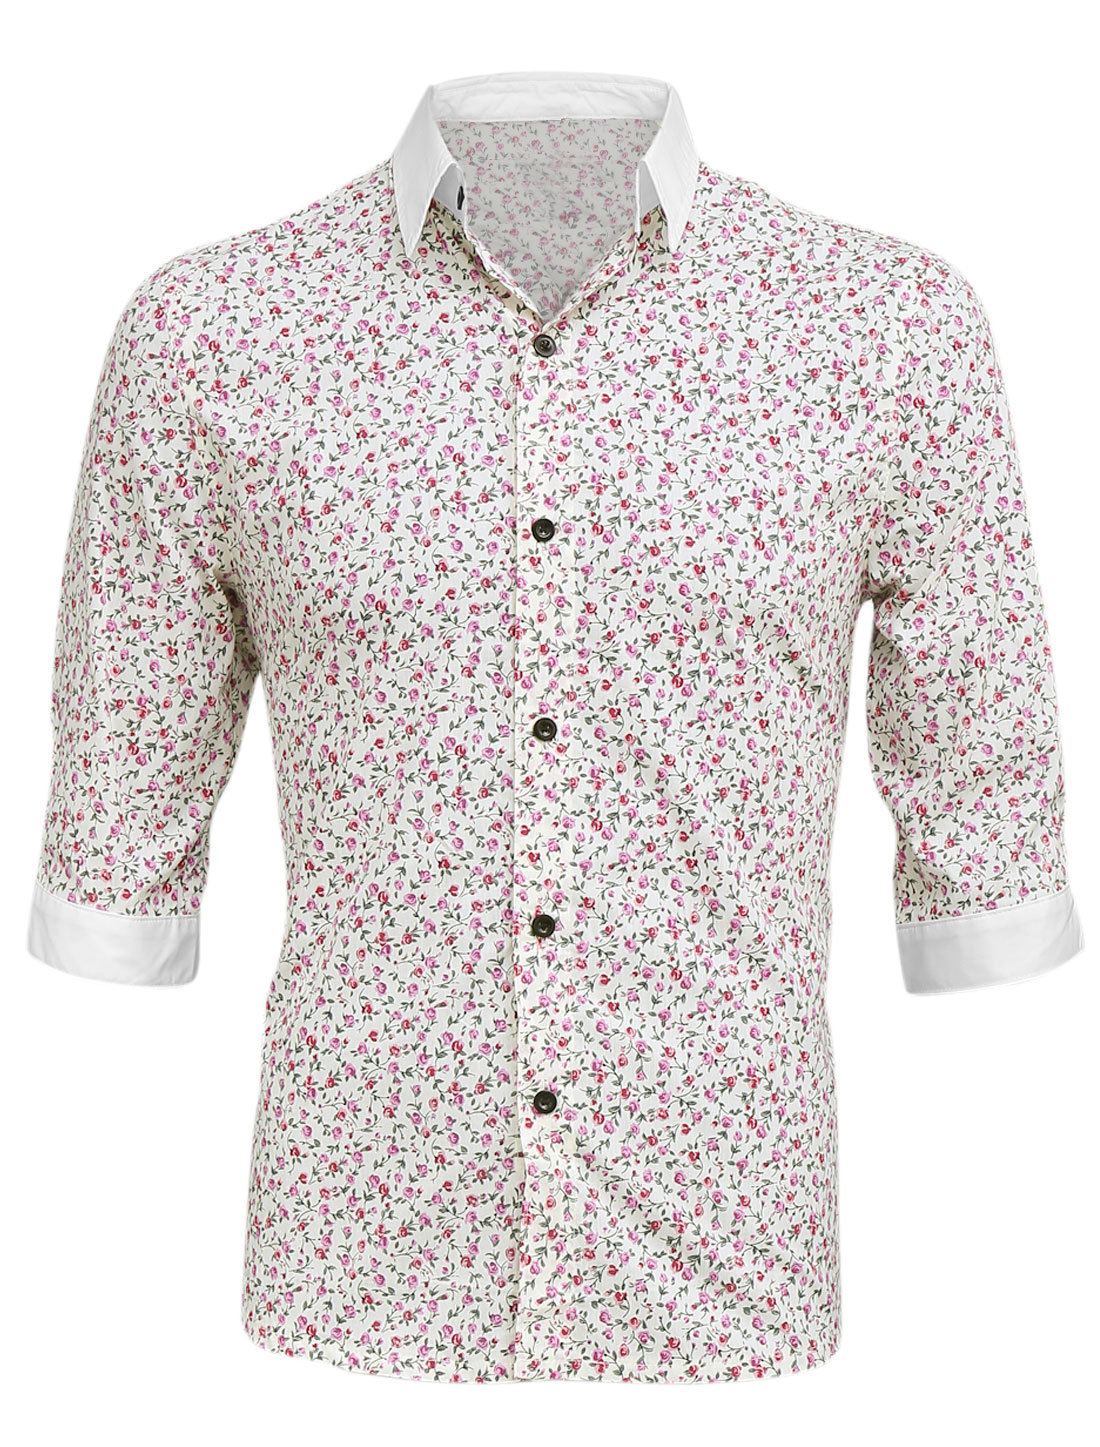 Half Sleeve Floral Prints Casual Top Shirt for Man Pink Beige M